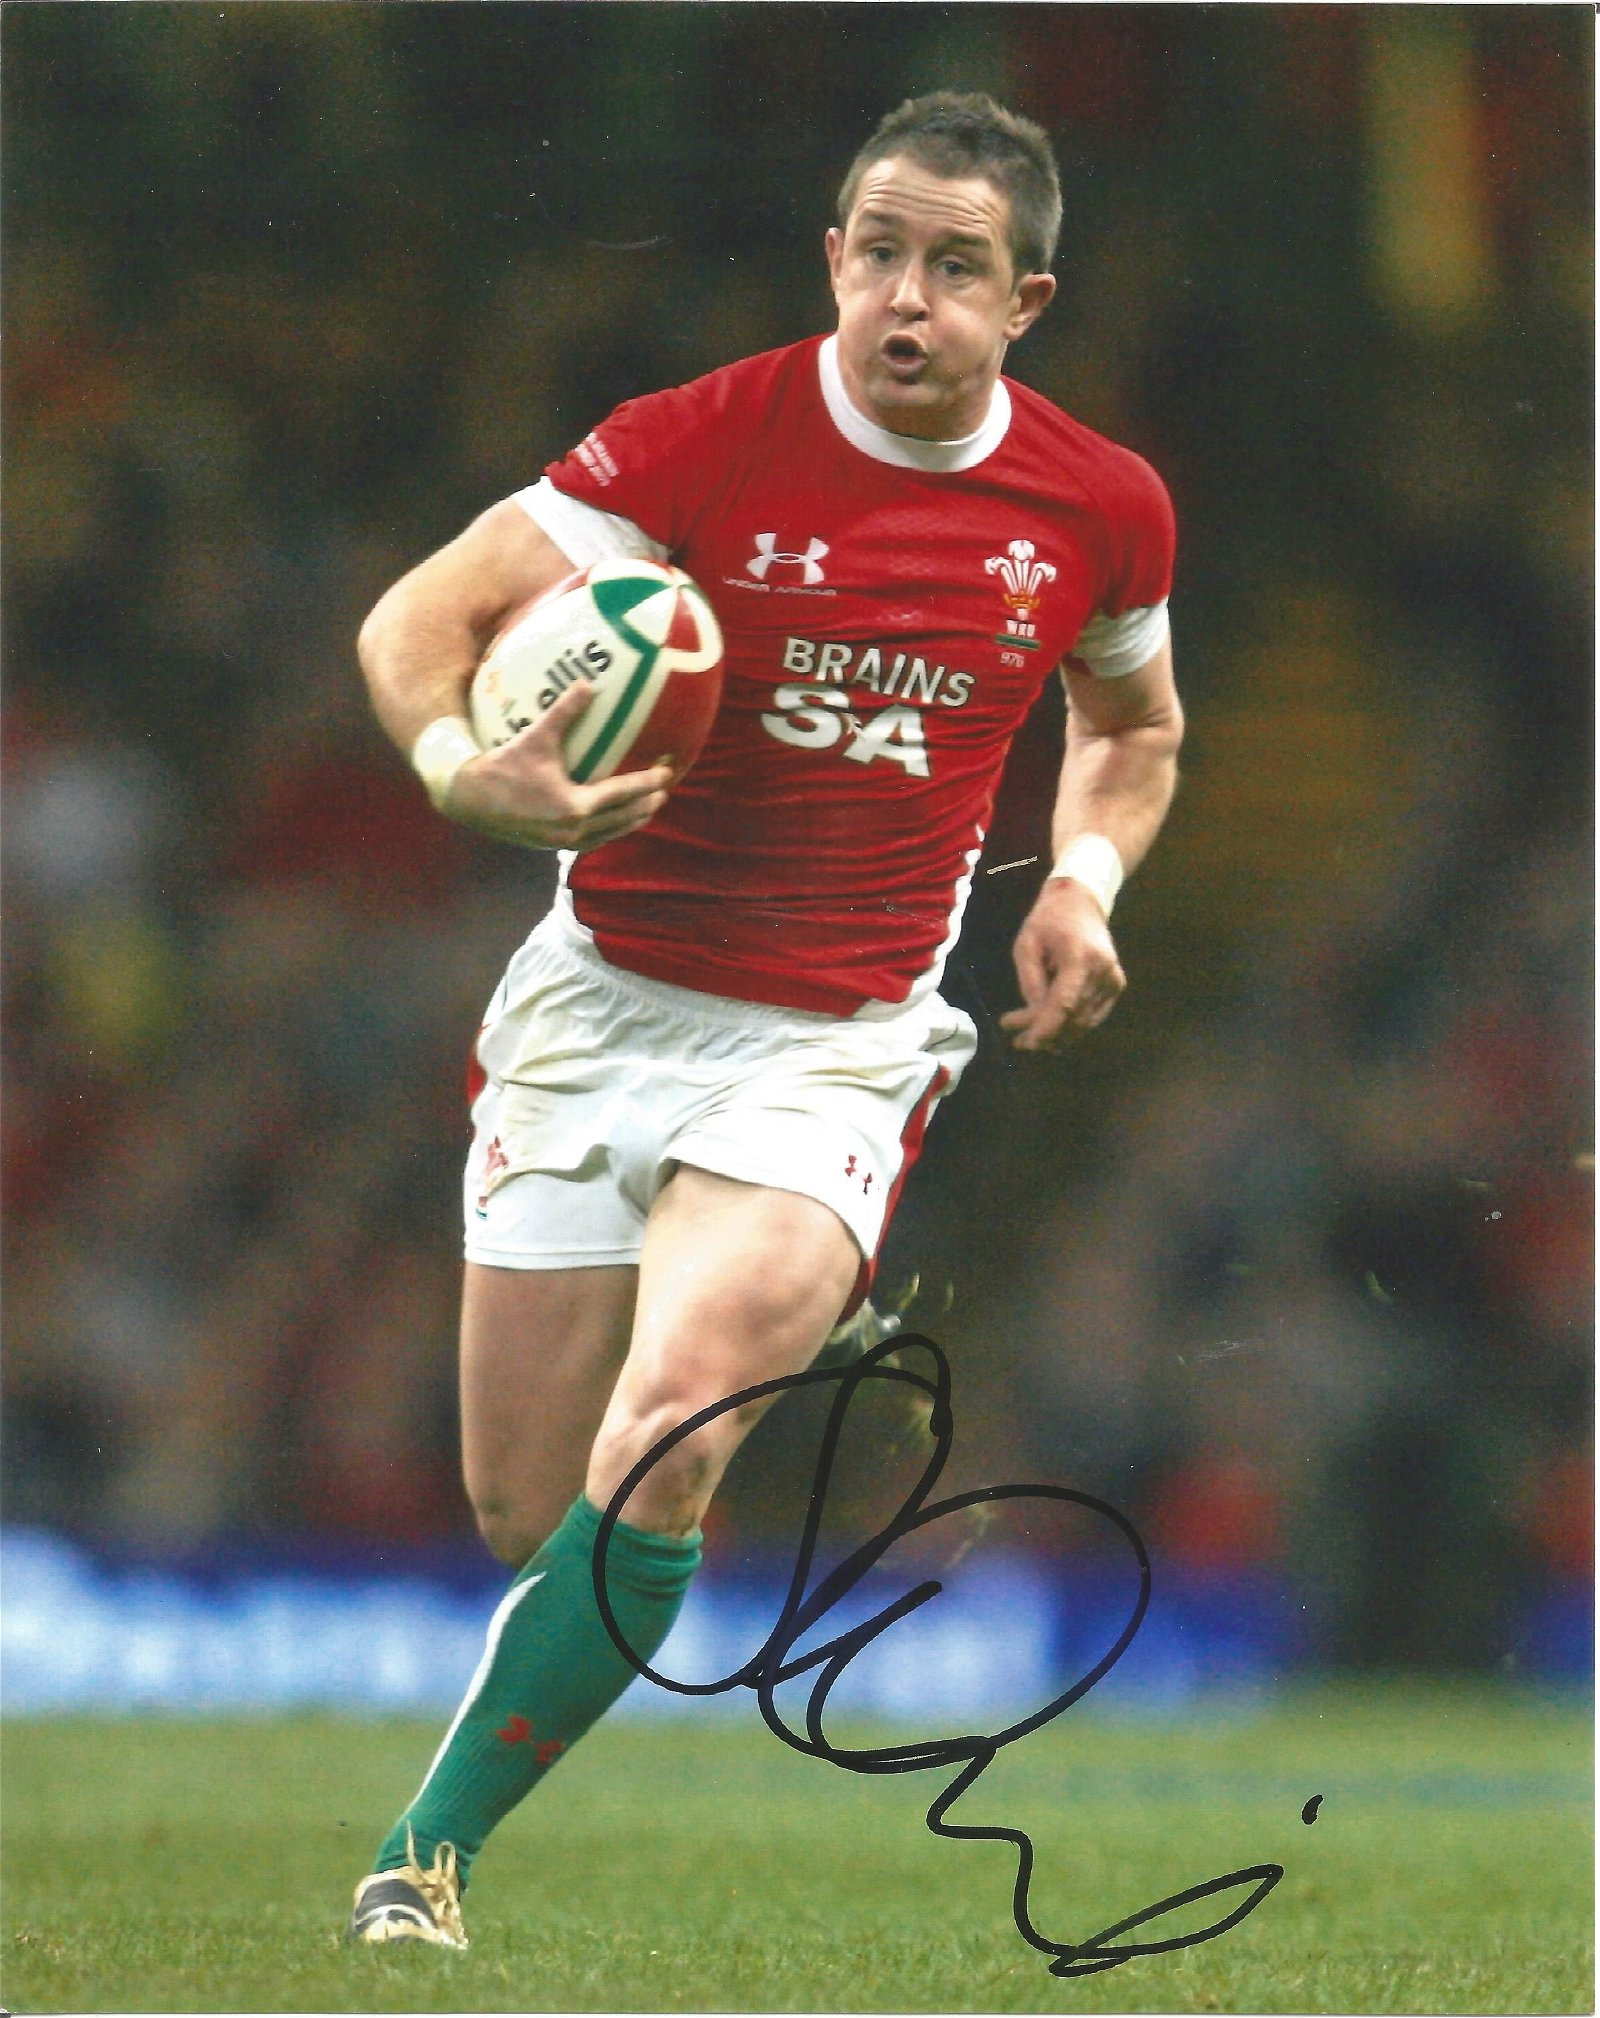 Shane Williams Signed Wales Rugby 8x10 Photo . Good